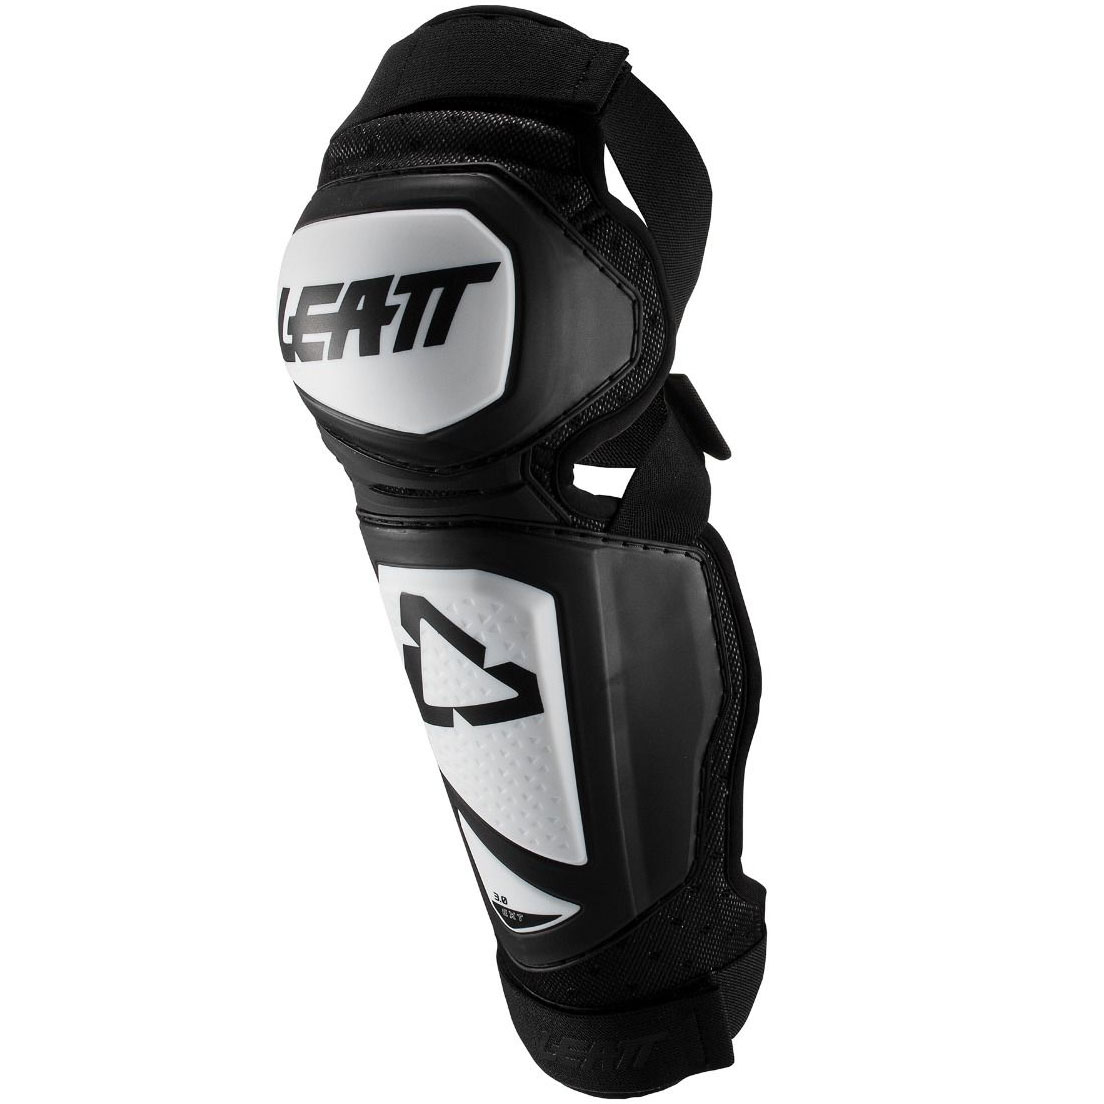 Leatt 3.0 EXT Knee & Shin Guard White/Black защита колен